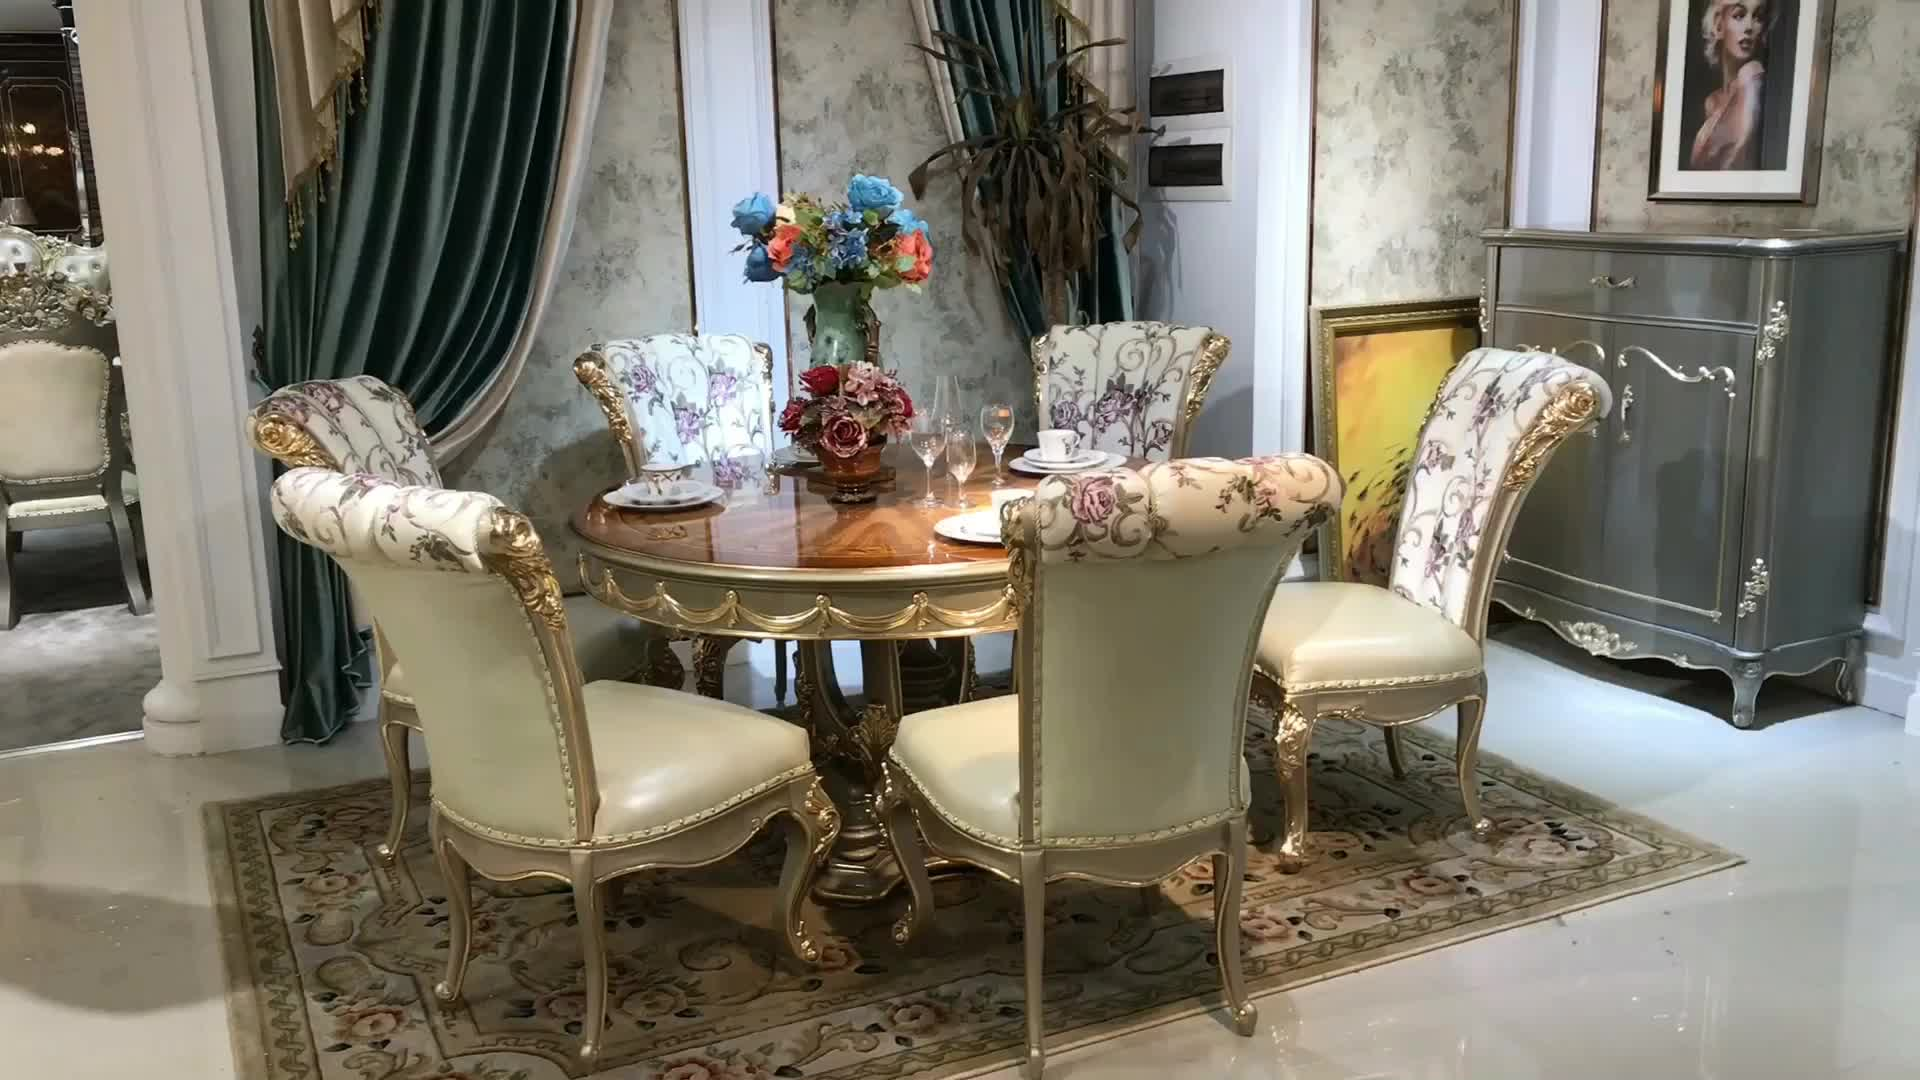 Luxury Wood Carved Arabic Dining Table With 6 Pcs Gold Dining Chairs In  Dining Room - Buy Arabic Dining Table,Gold Dining Chair,Wood Dining Room  Table ...